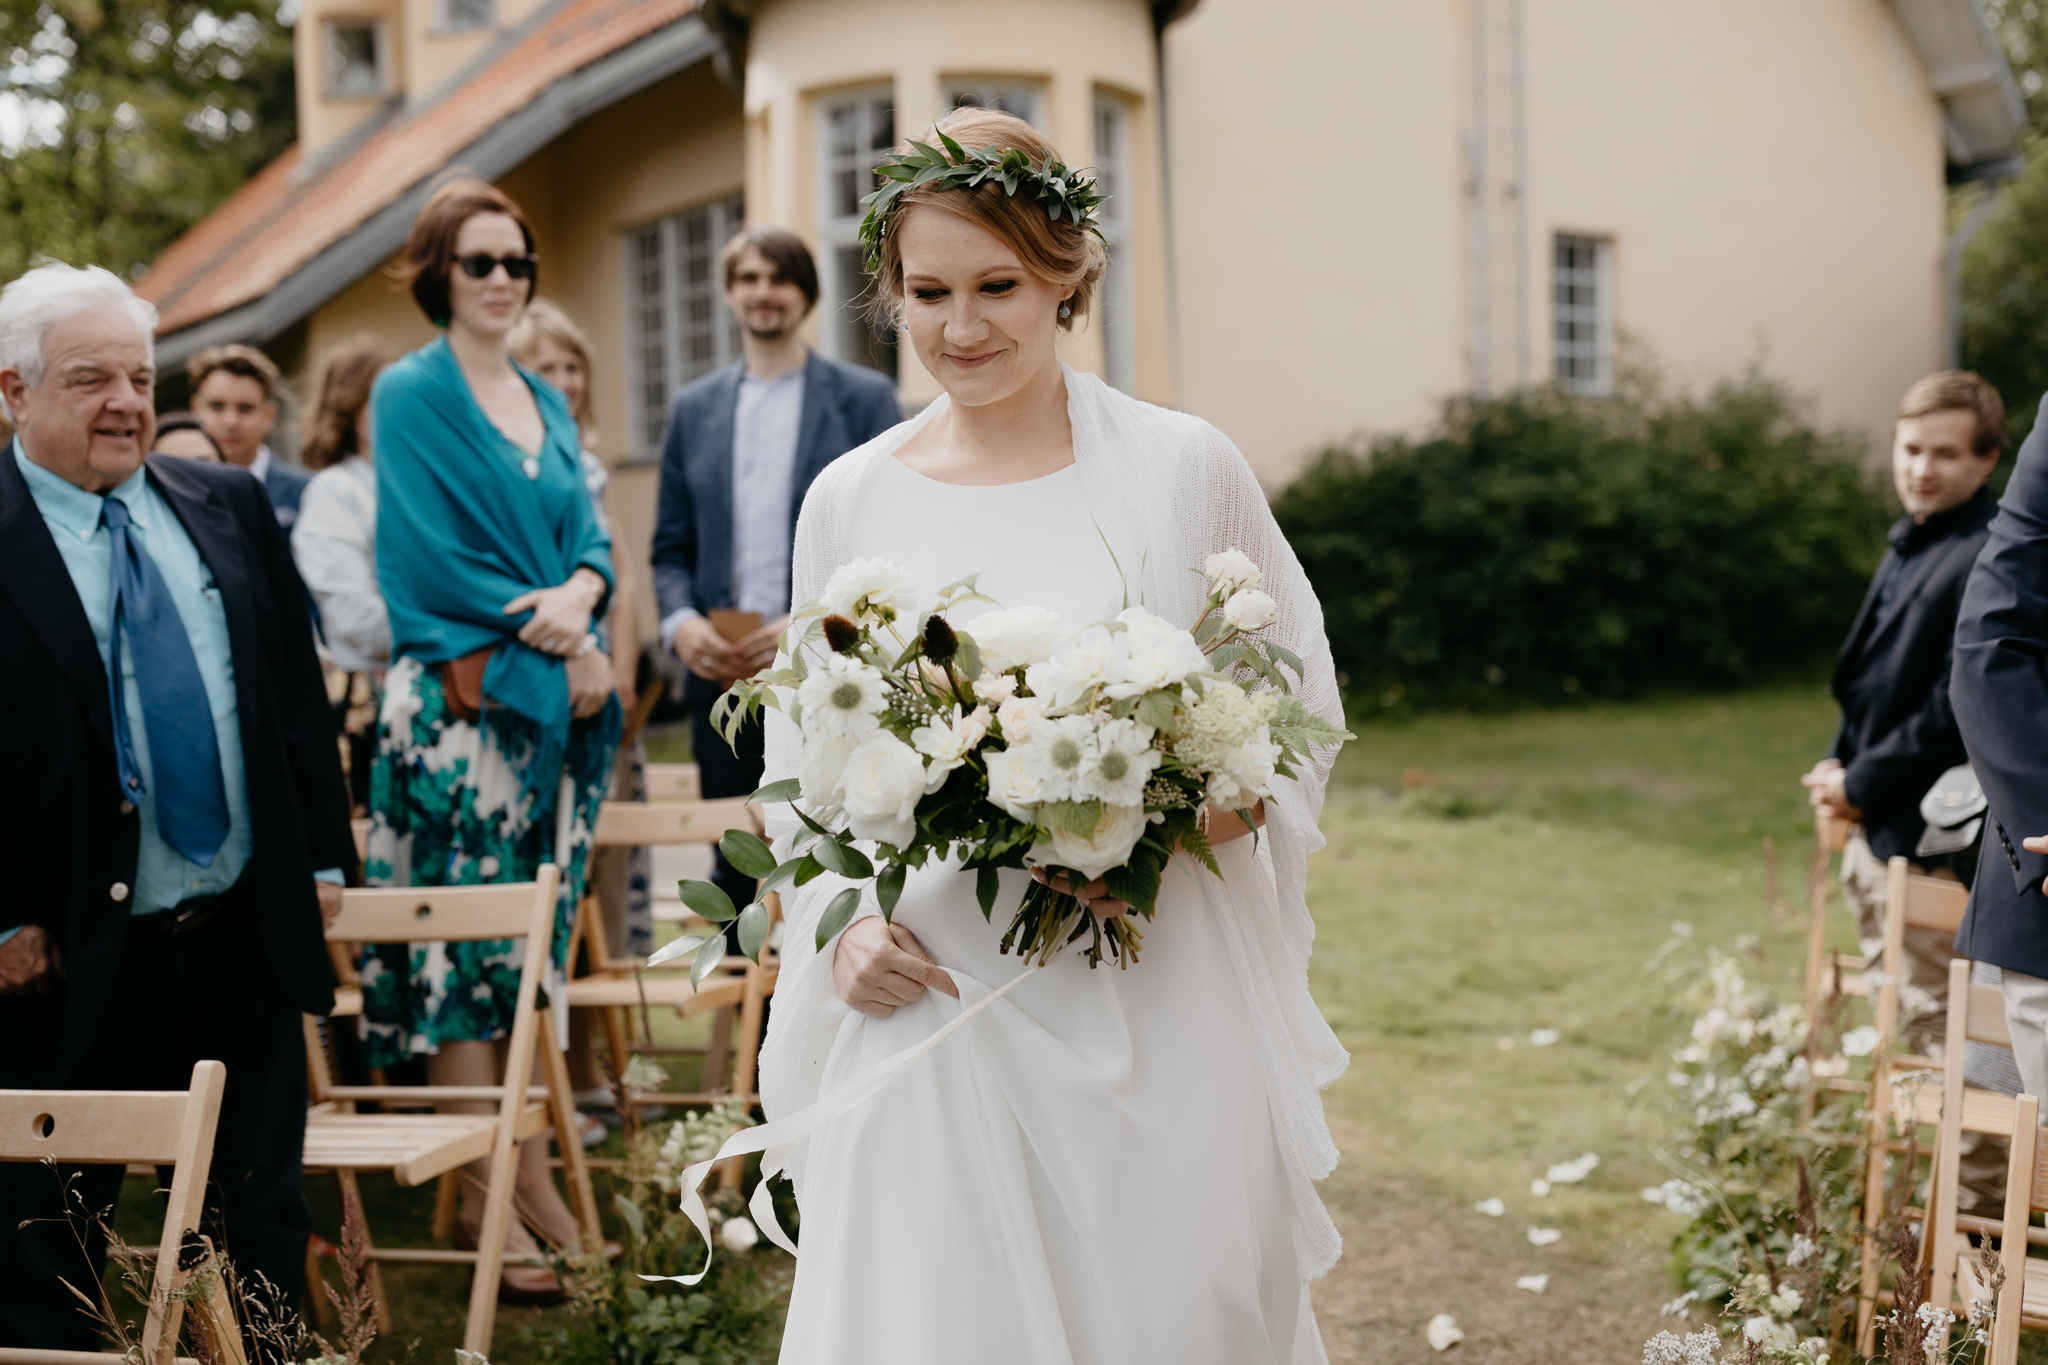 Vilhelmiina + Mark | Photo by Patrick Karkkolainen Wedding Photographer | Helsinki Wedding Photographer-80.jpg